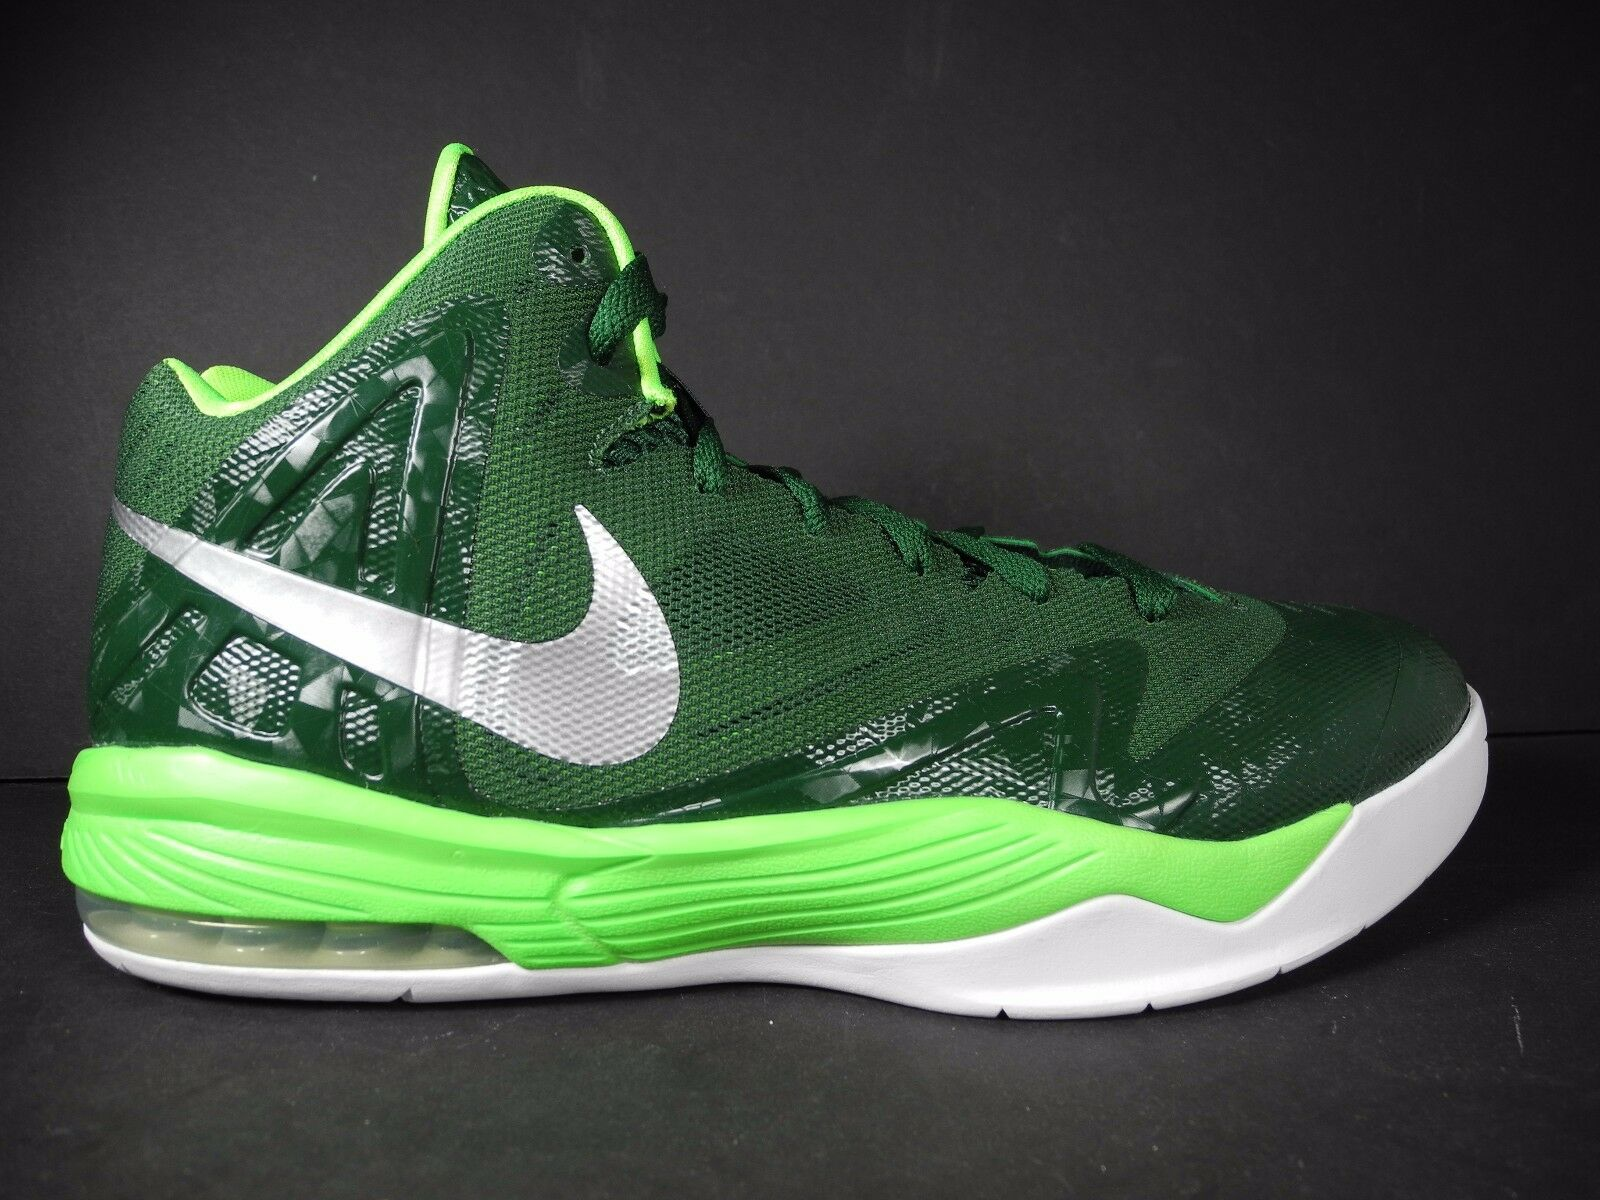 New NIKE AIR MAX PREMIERE TB Men's Basketball Shoes US 8.5  Cheap and beautiful fashion